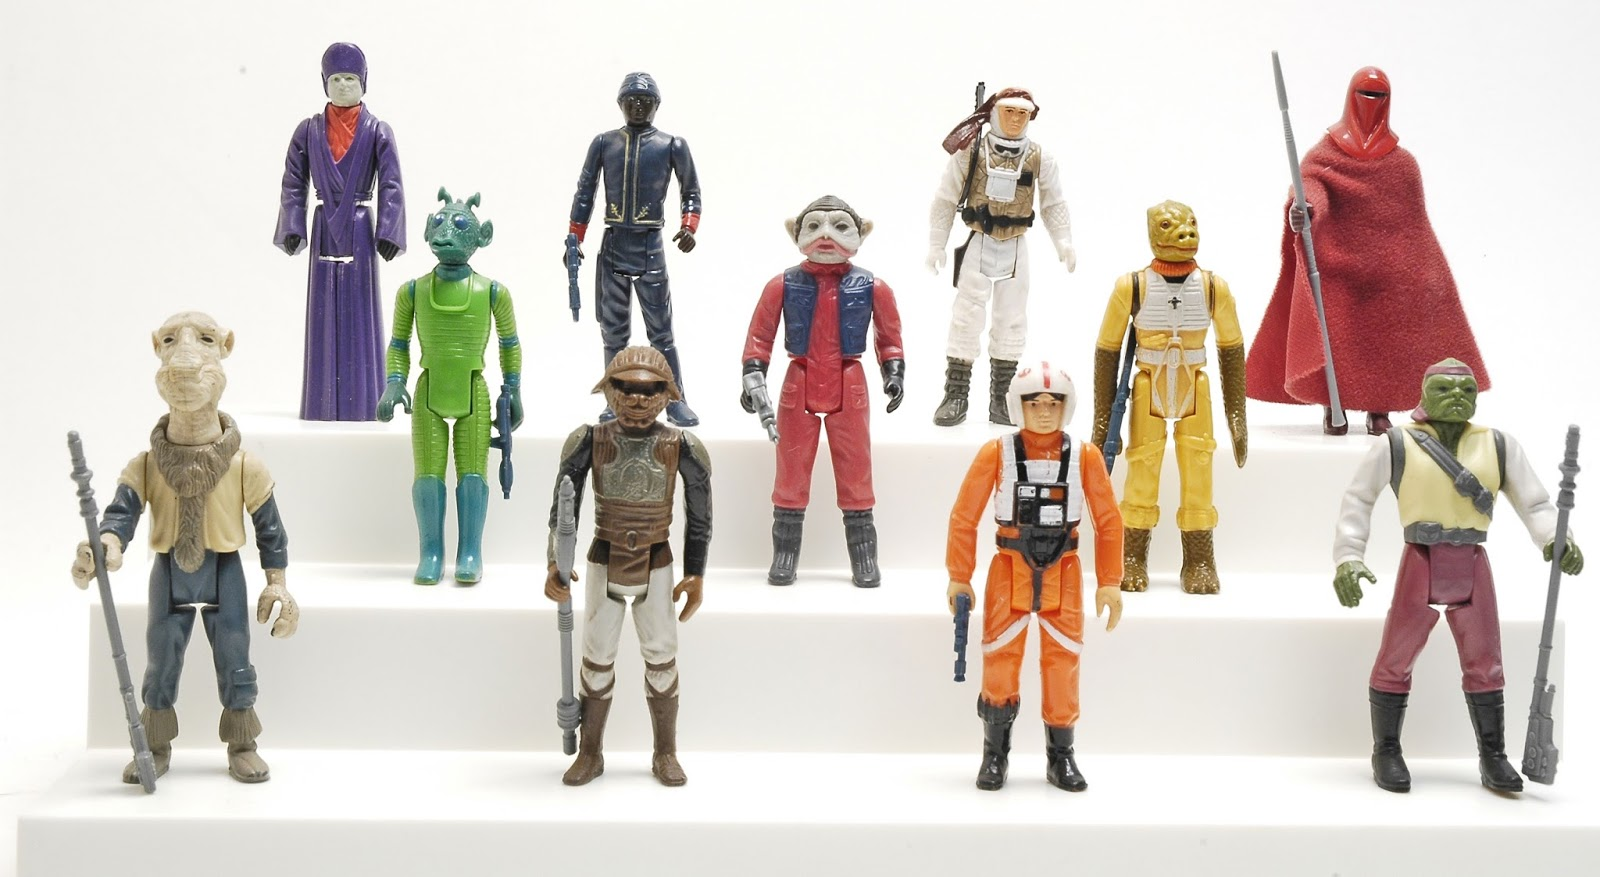 Star Wars Toys : Jared unzipped your star wars toys will not make you rich